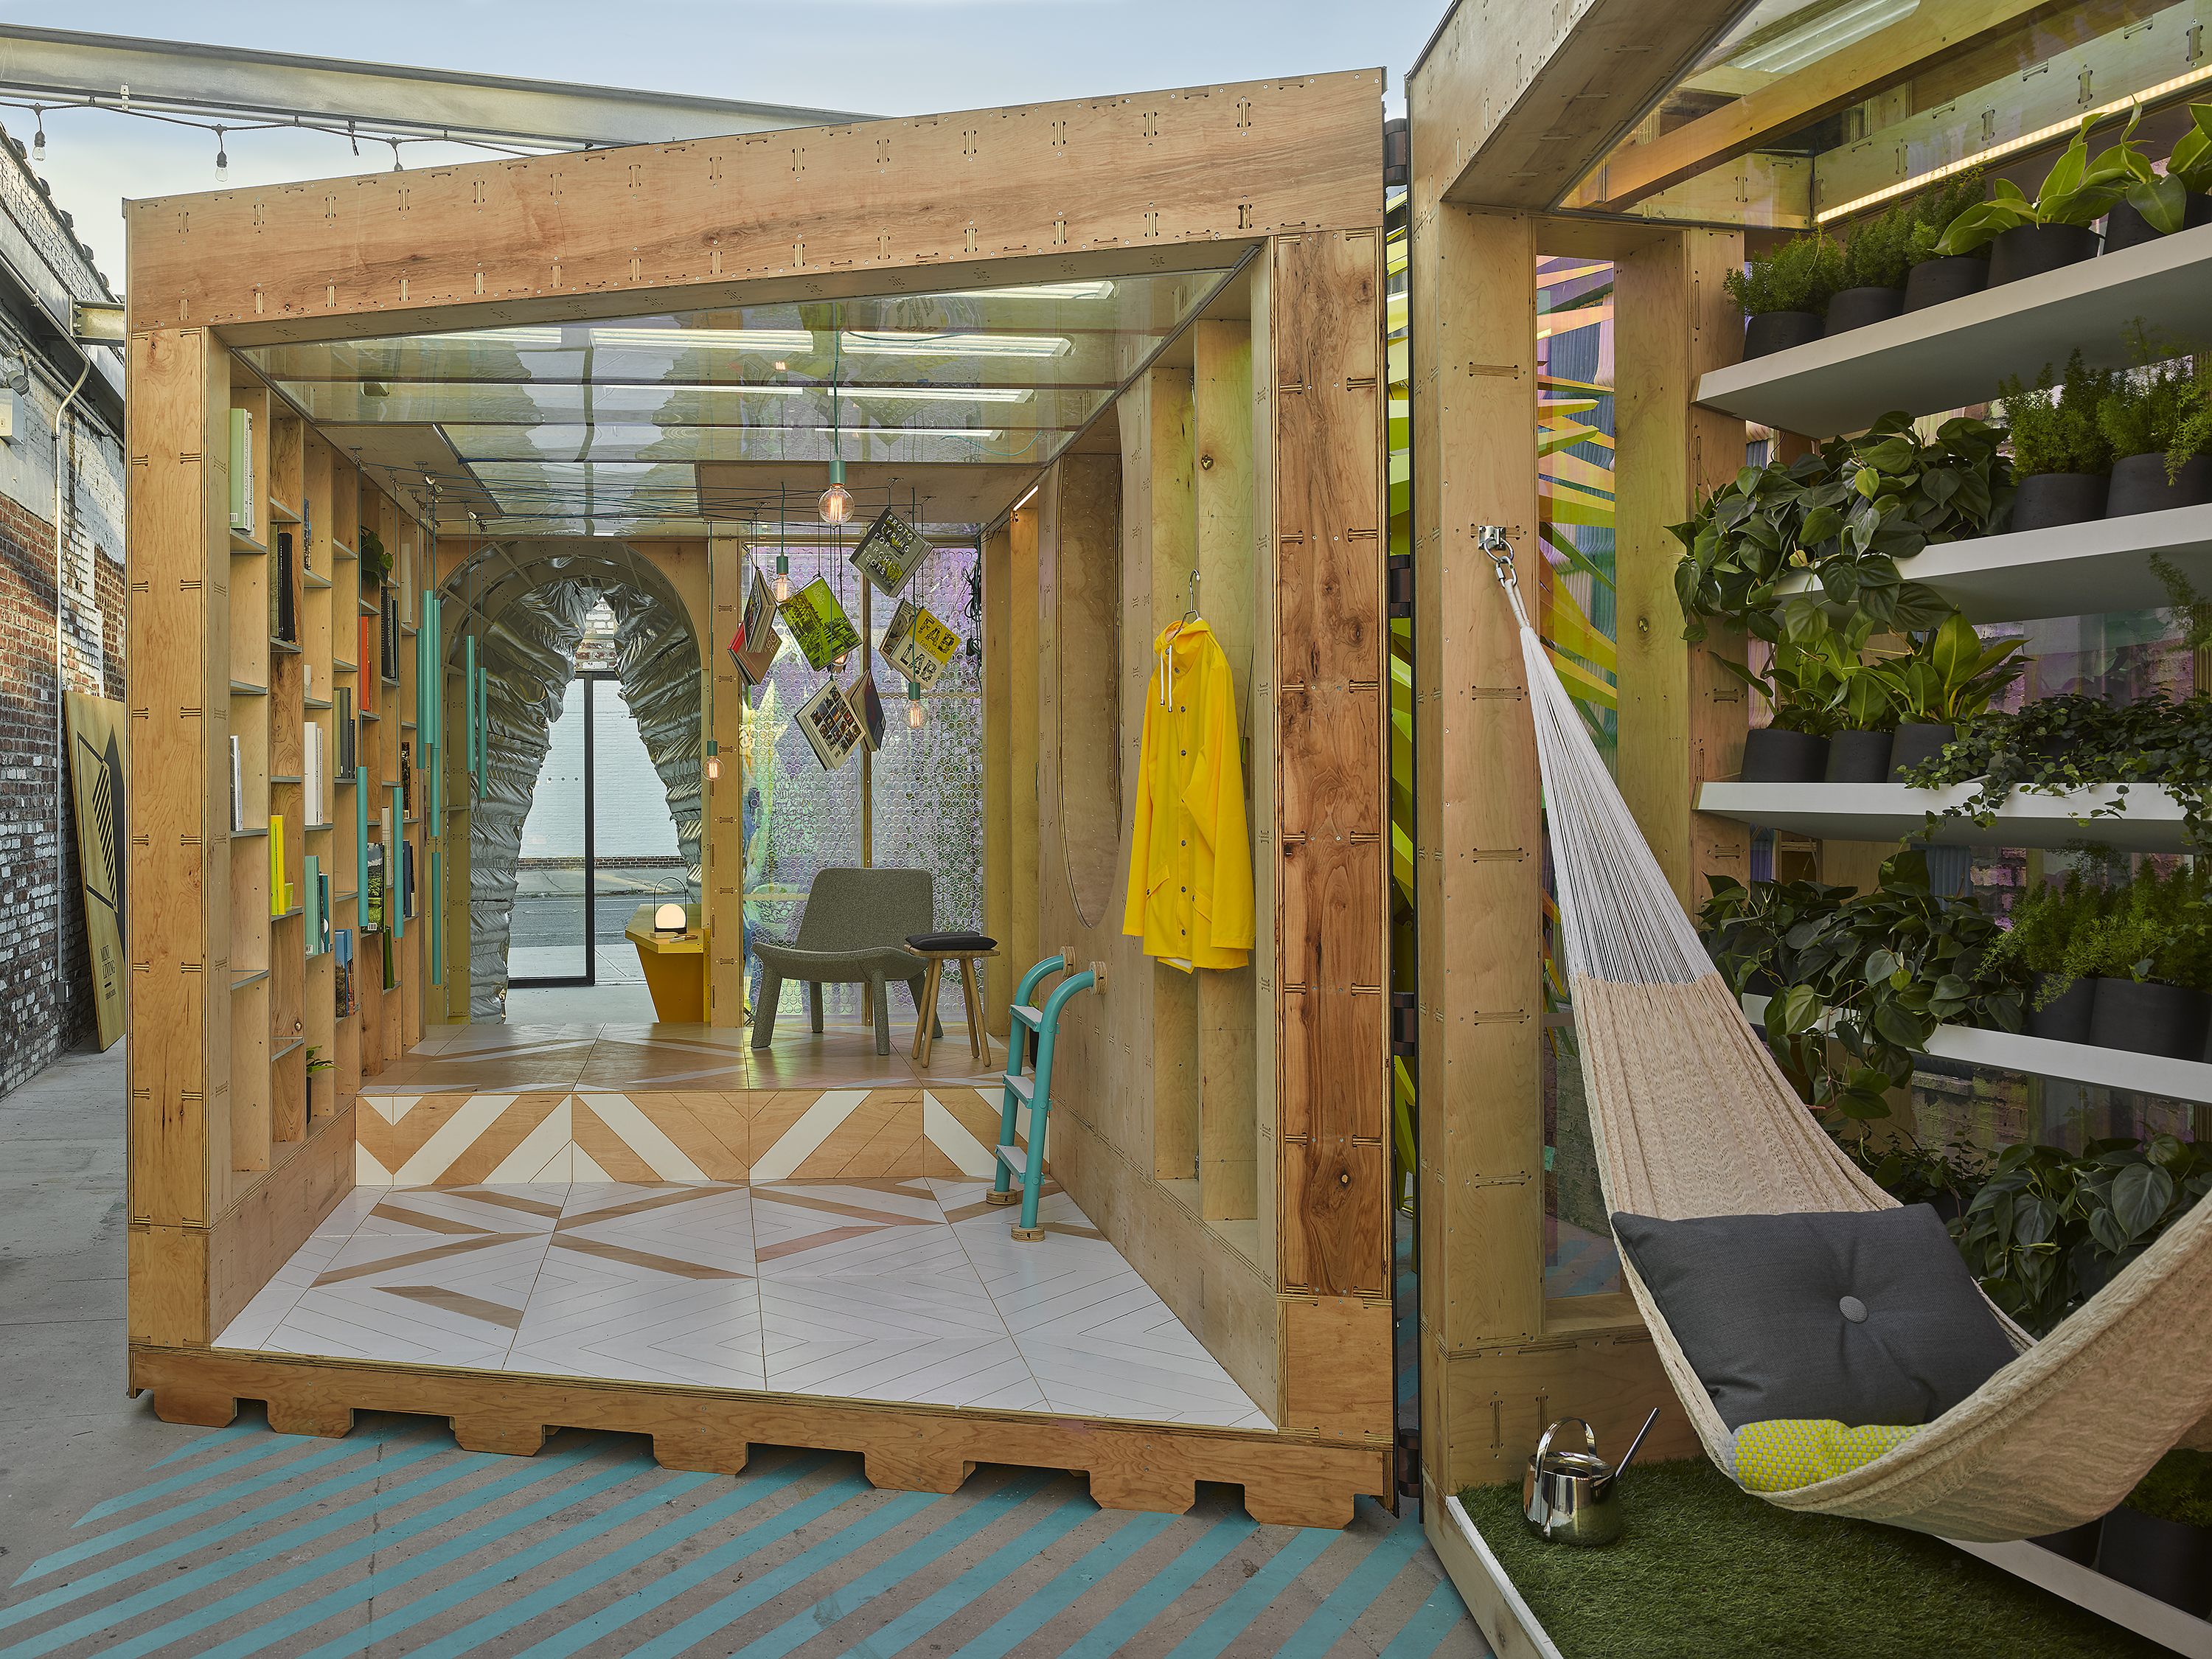 The tiny cabin goes high design in new micro housing concept